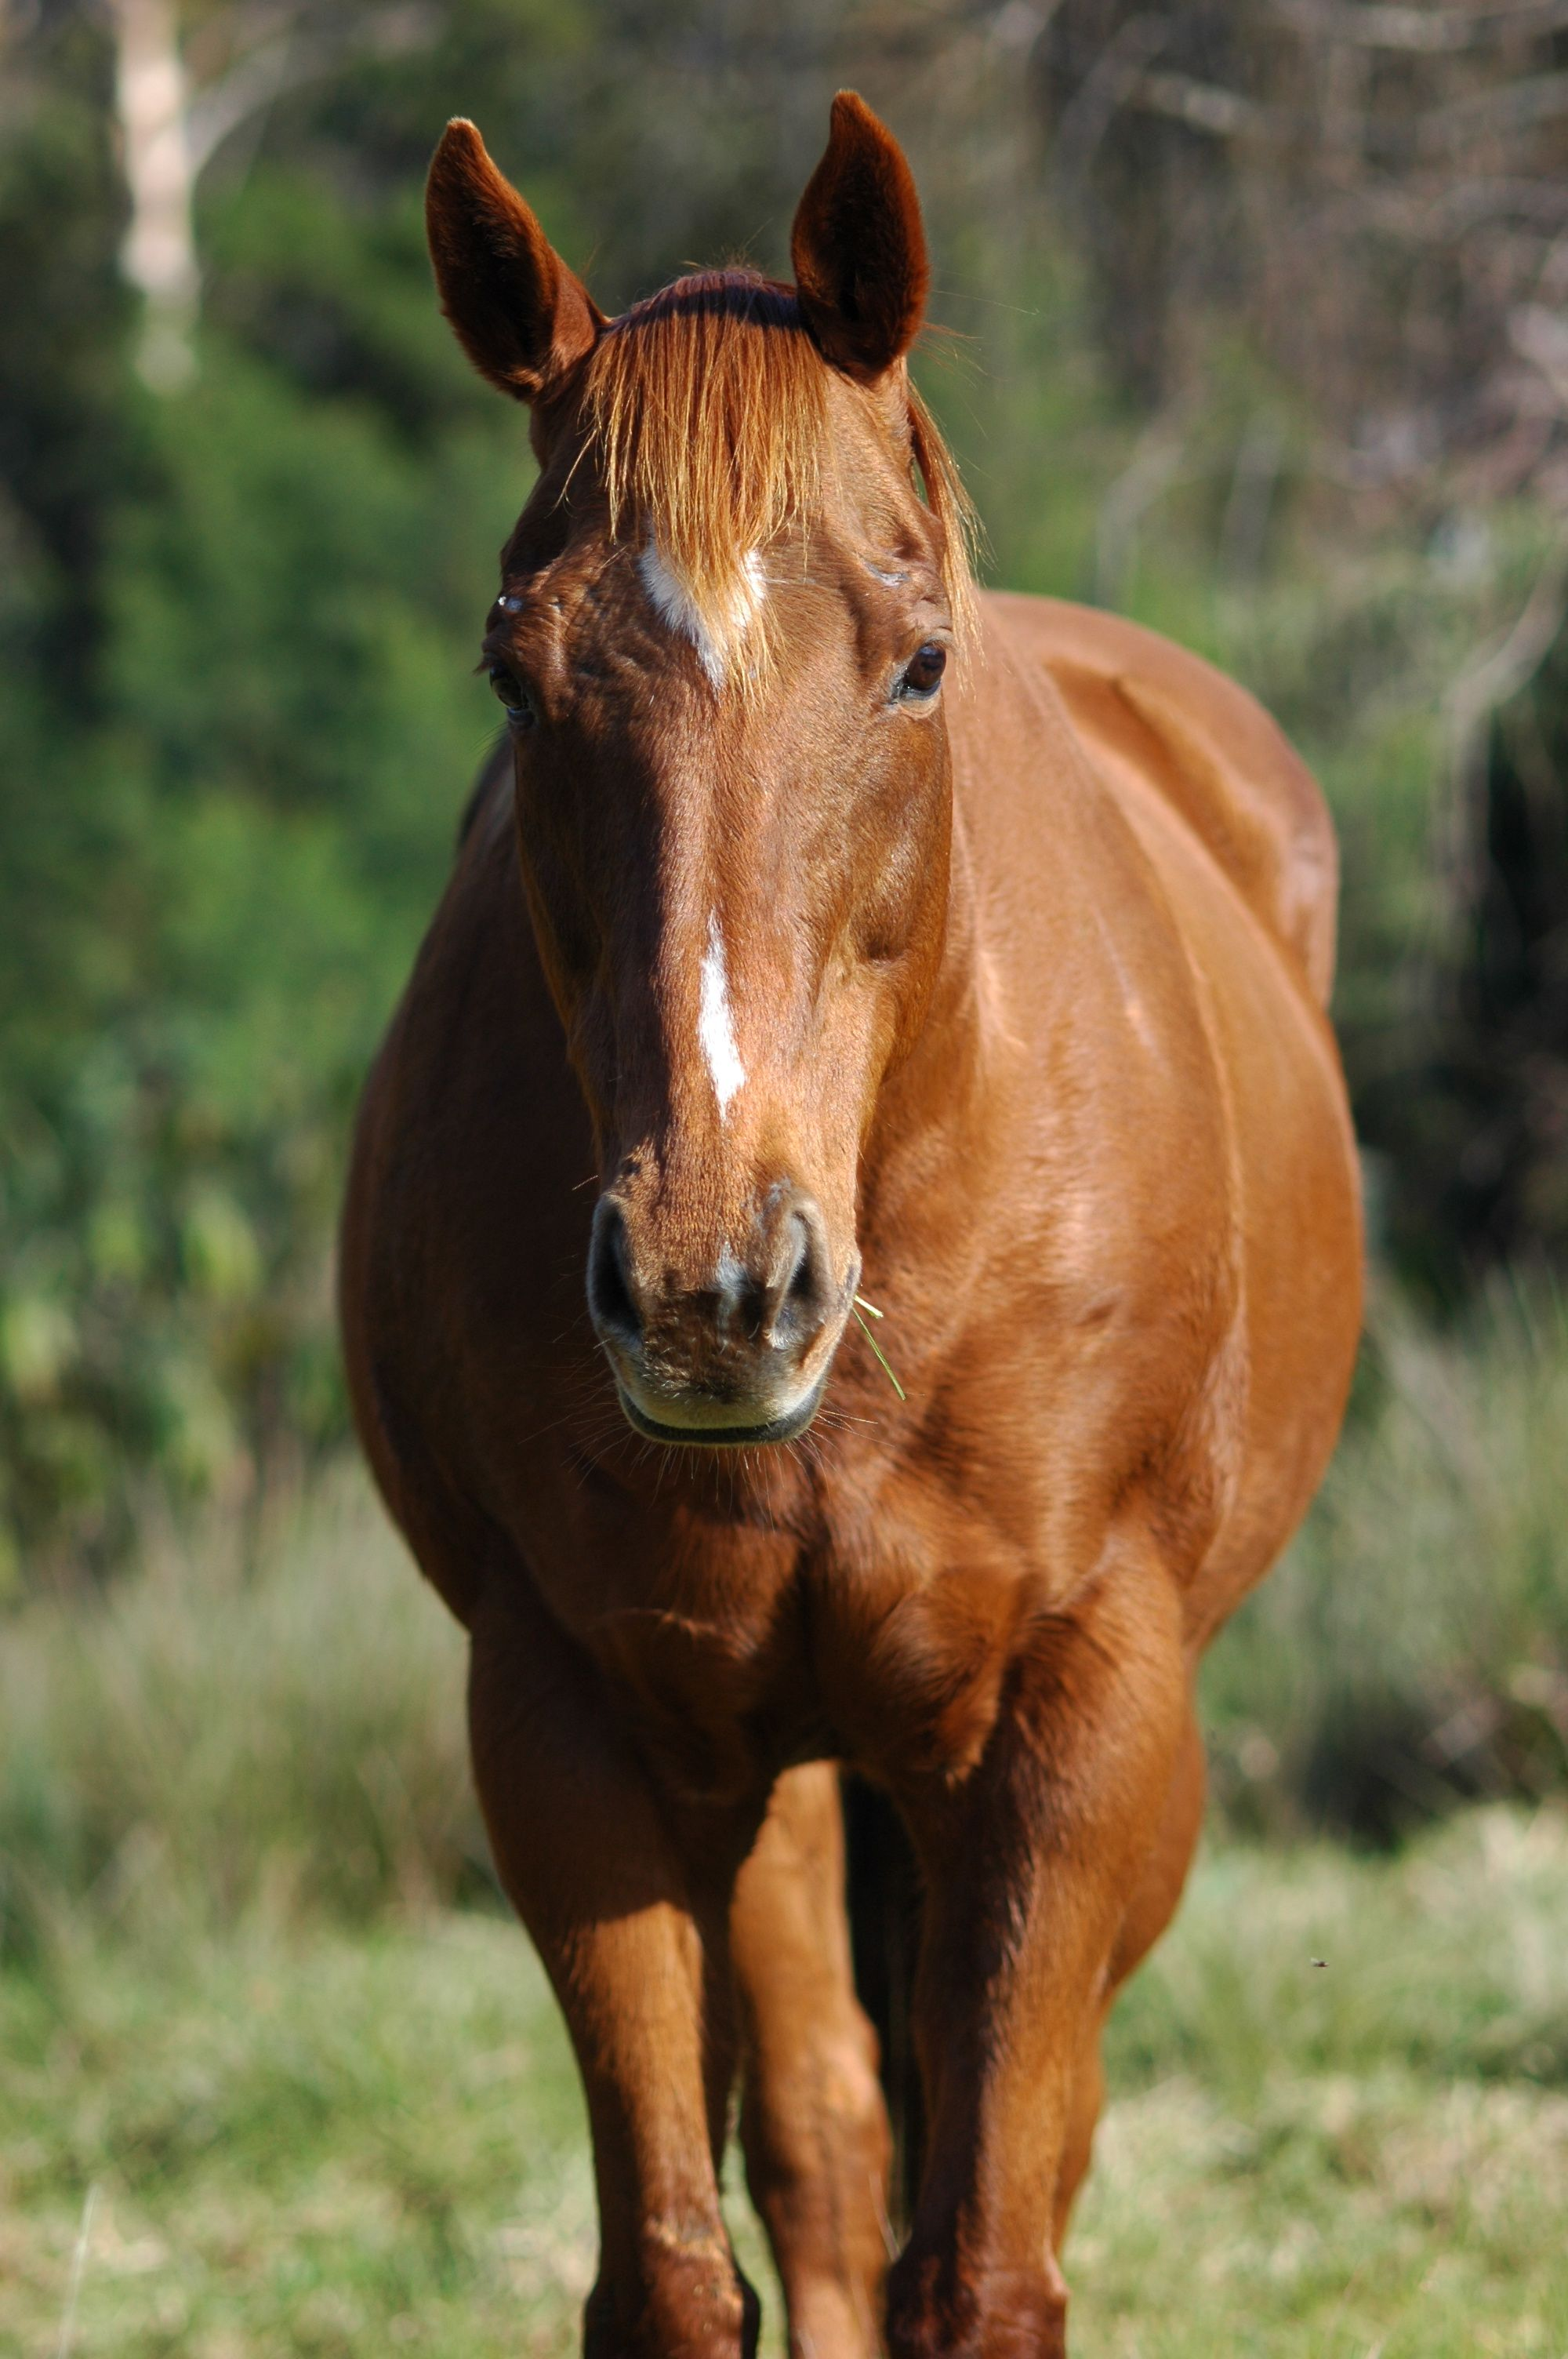 Front view horses pinterest horse creatures and animal front view sciox Choice Image